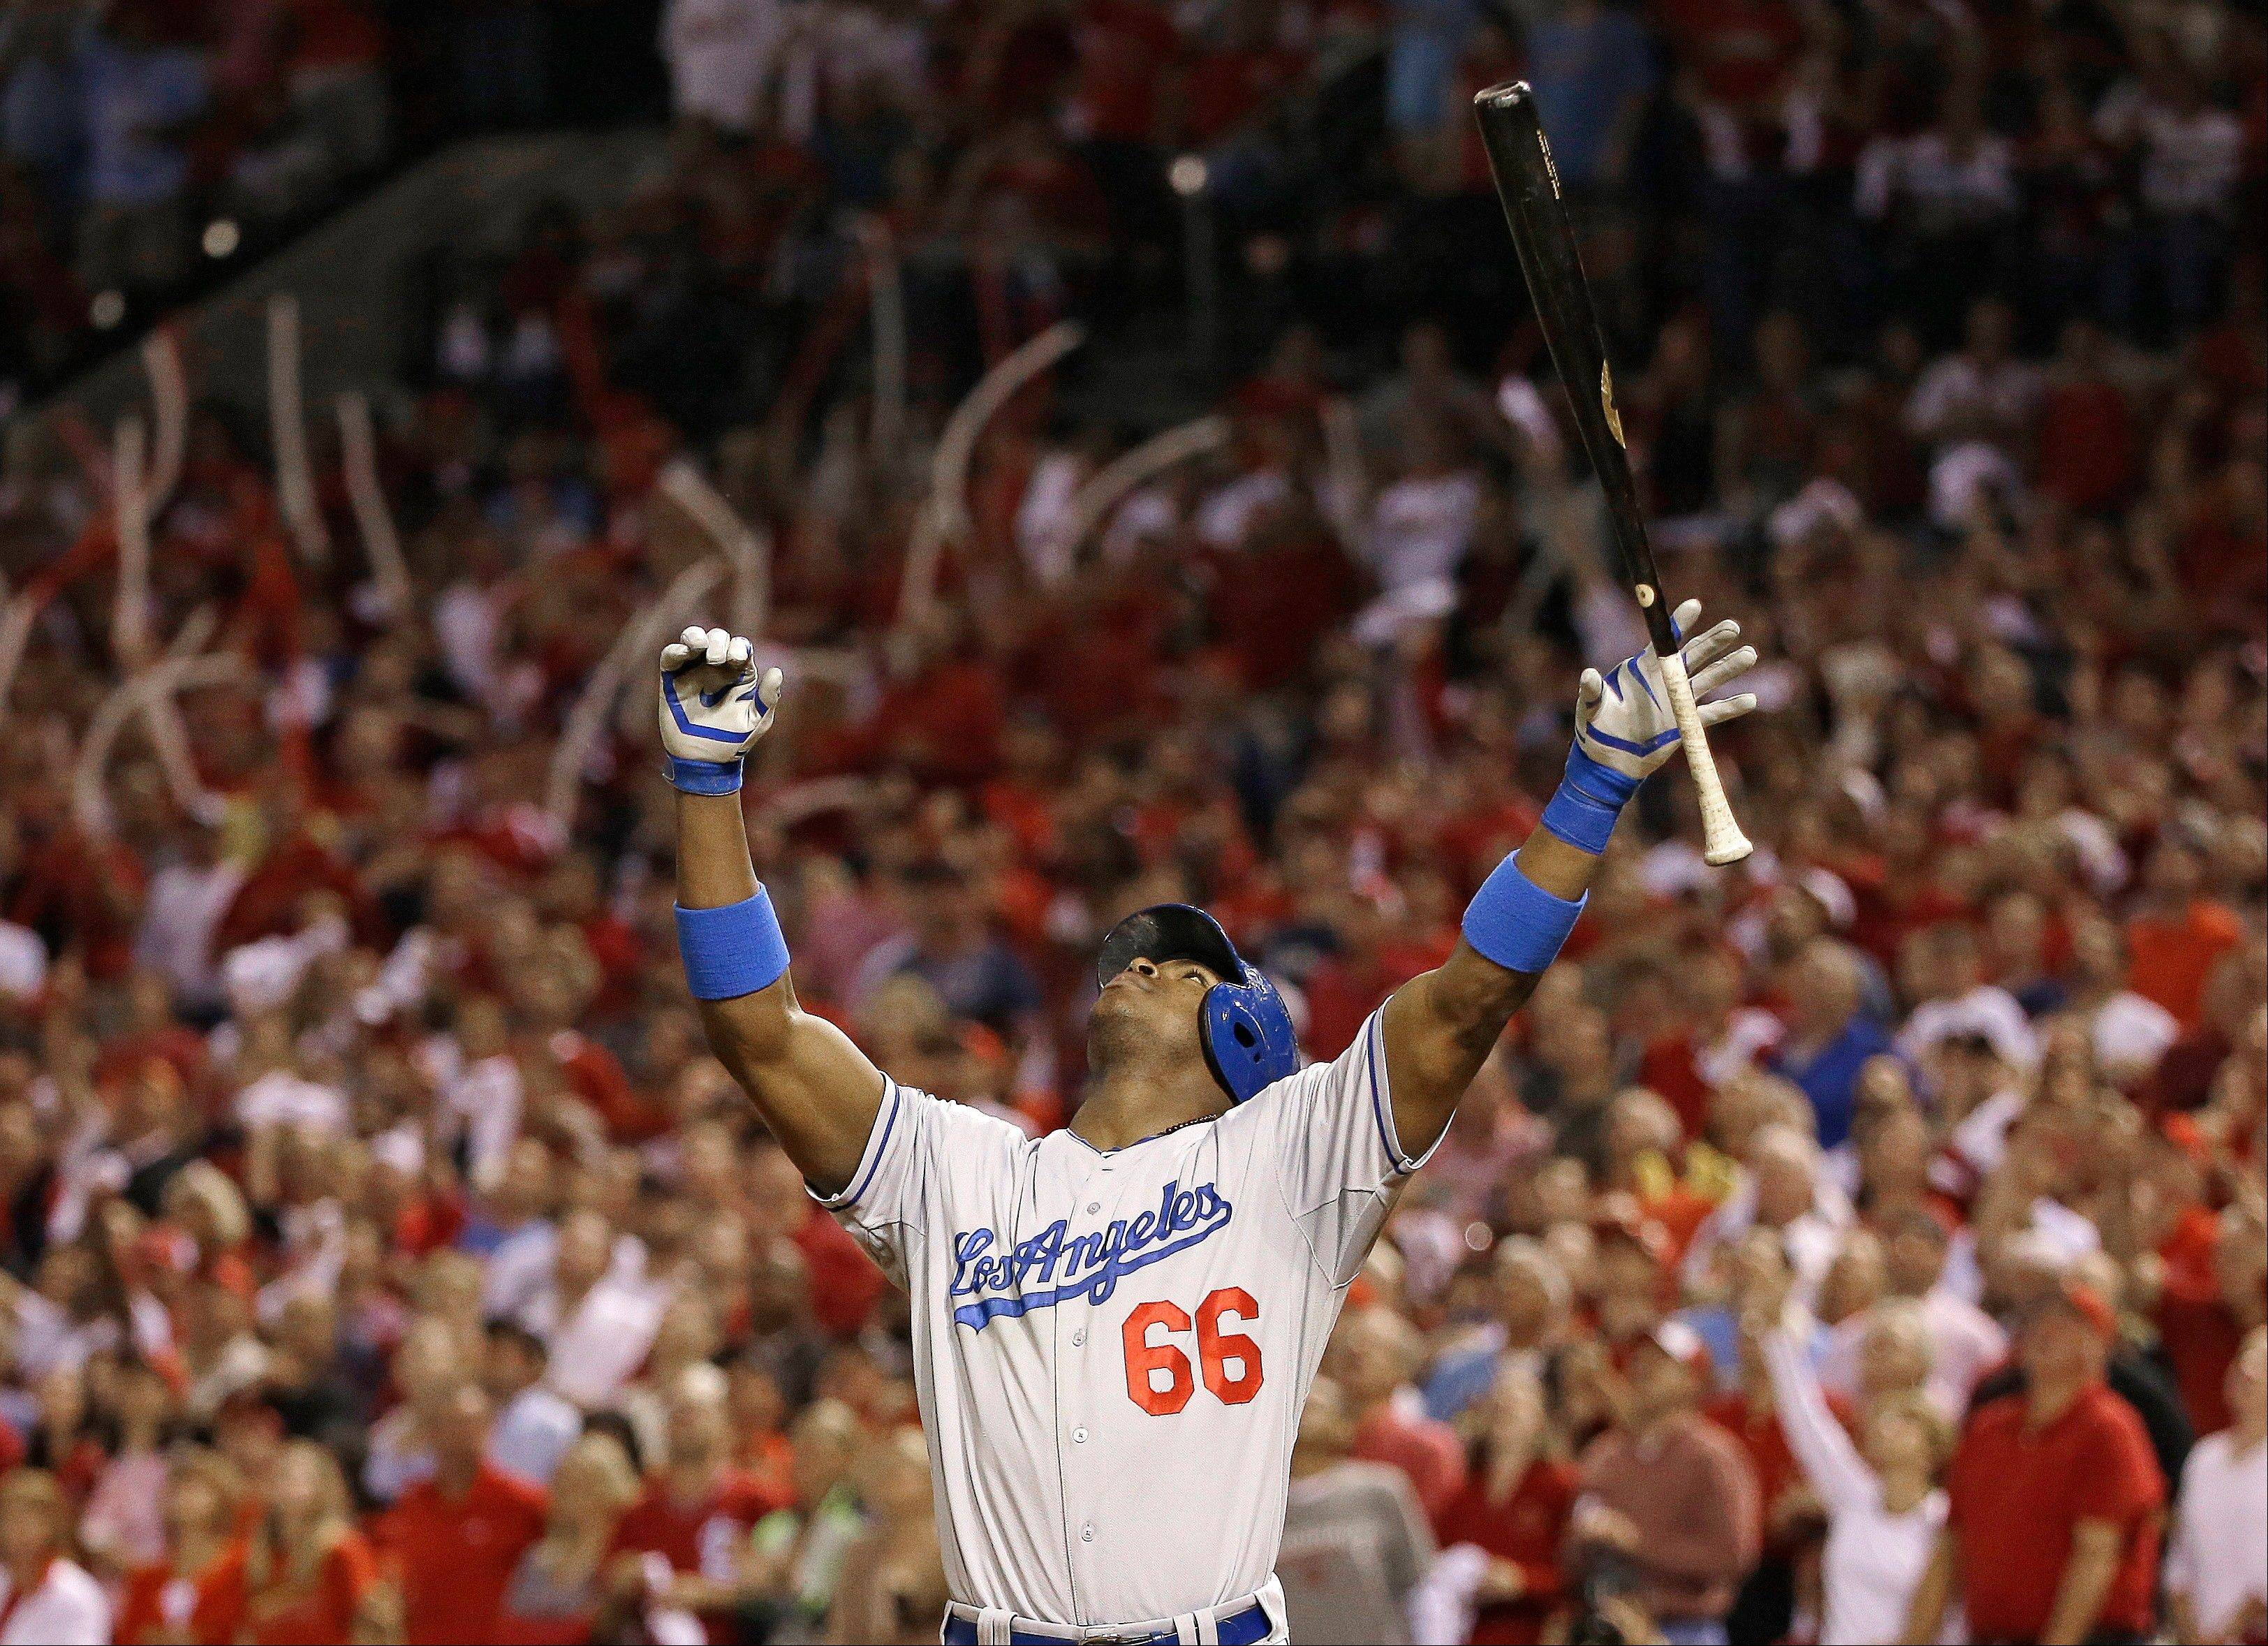 The Dodgers' Yasiel Puig looks up as he pops out during the fifth inning of Game 1.